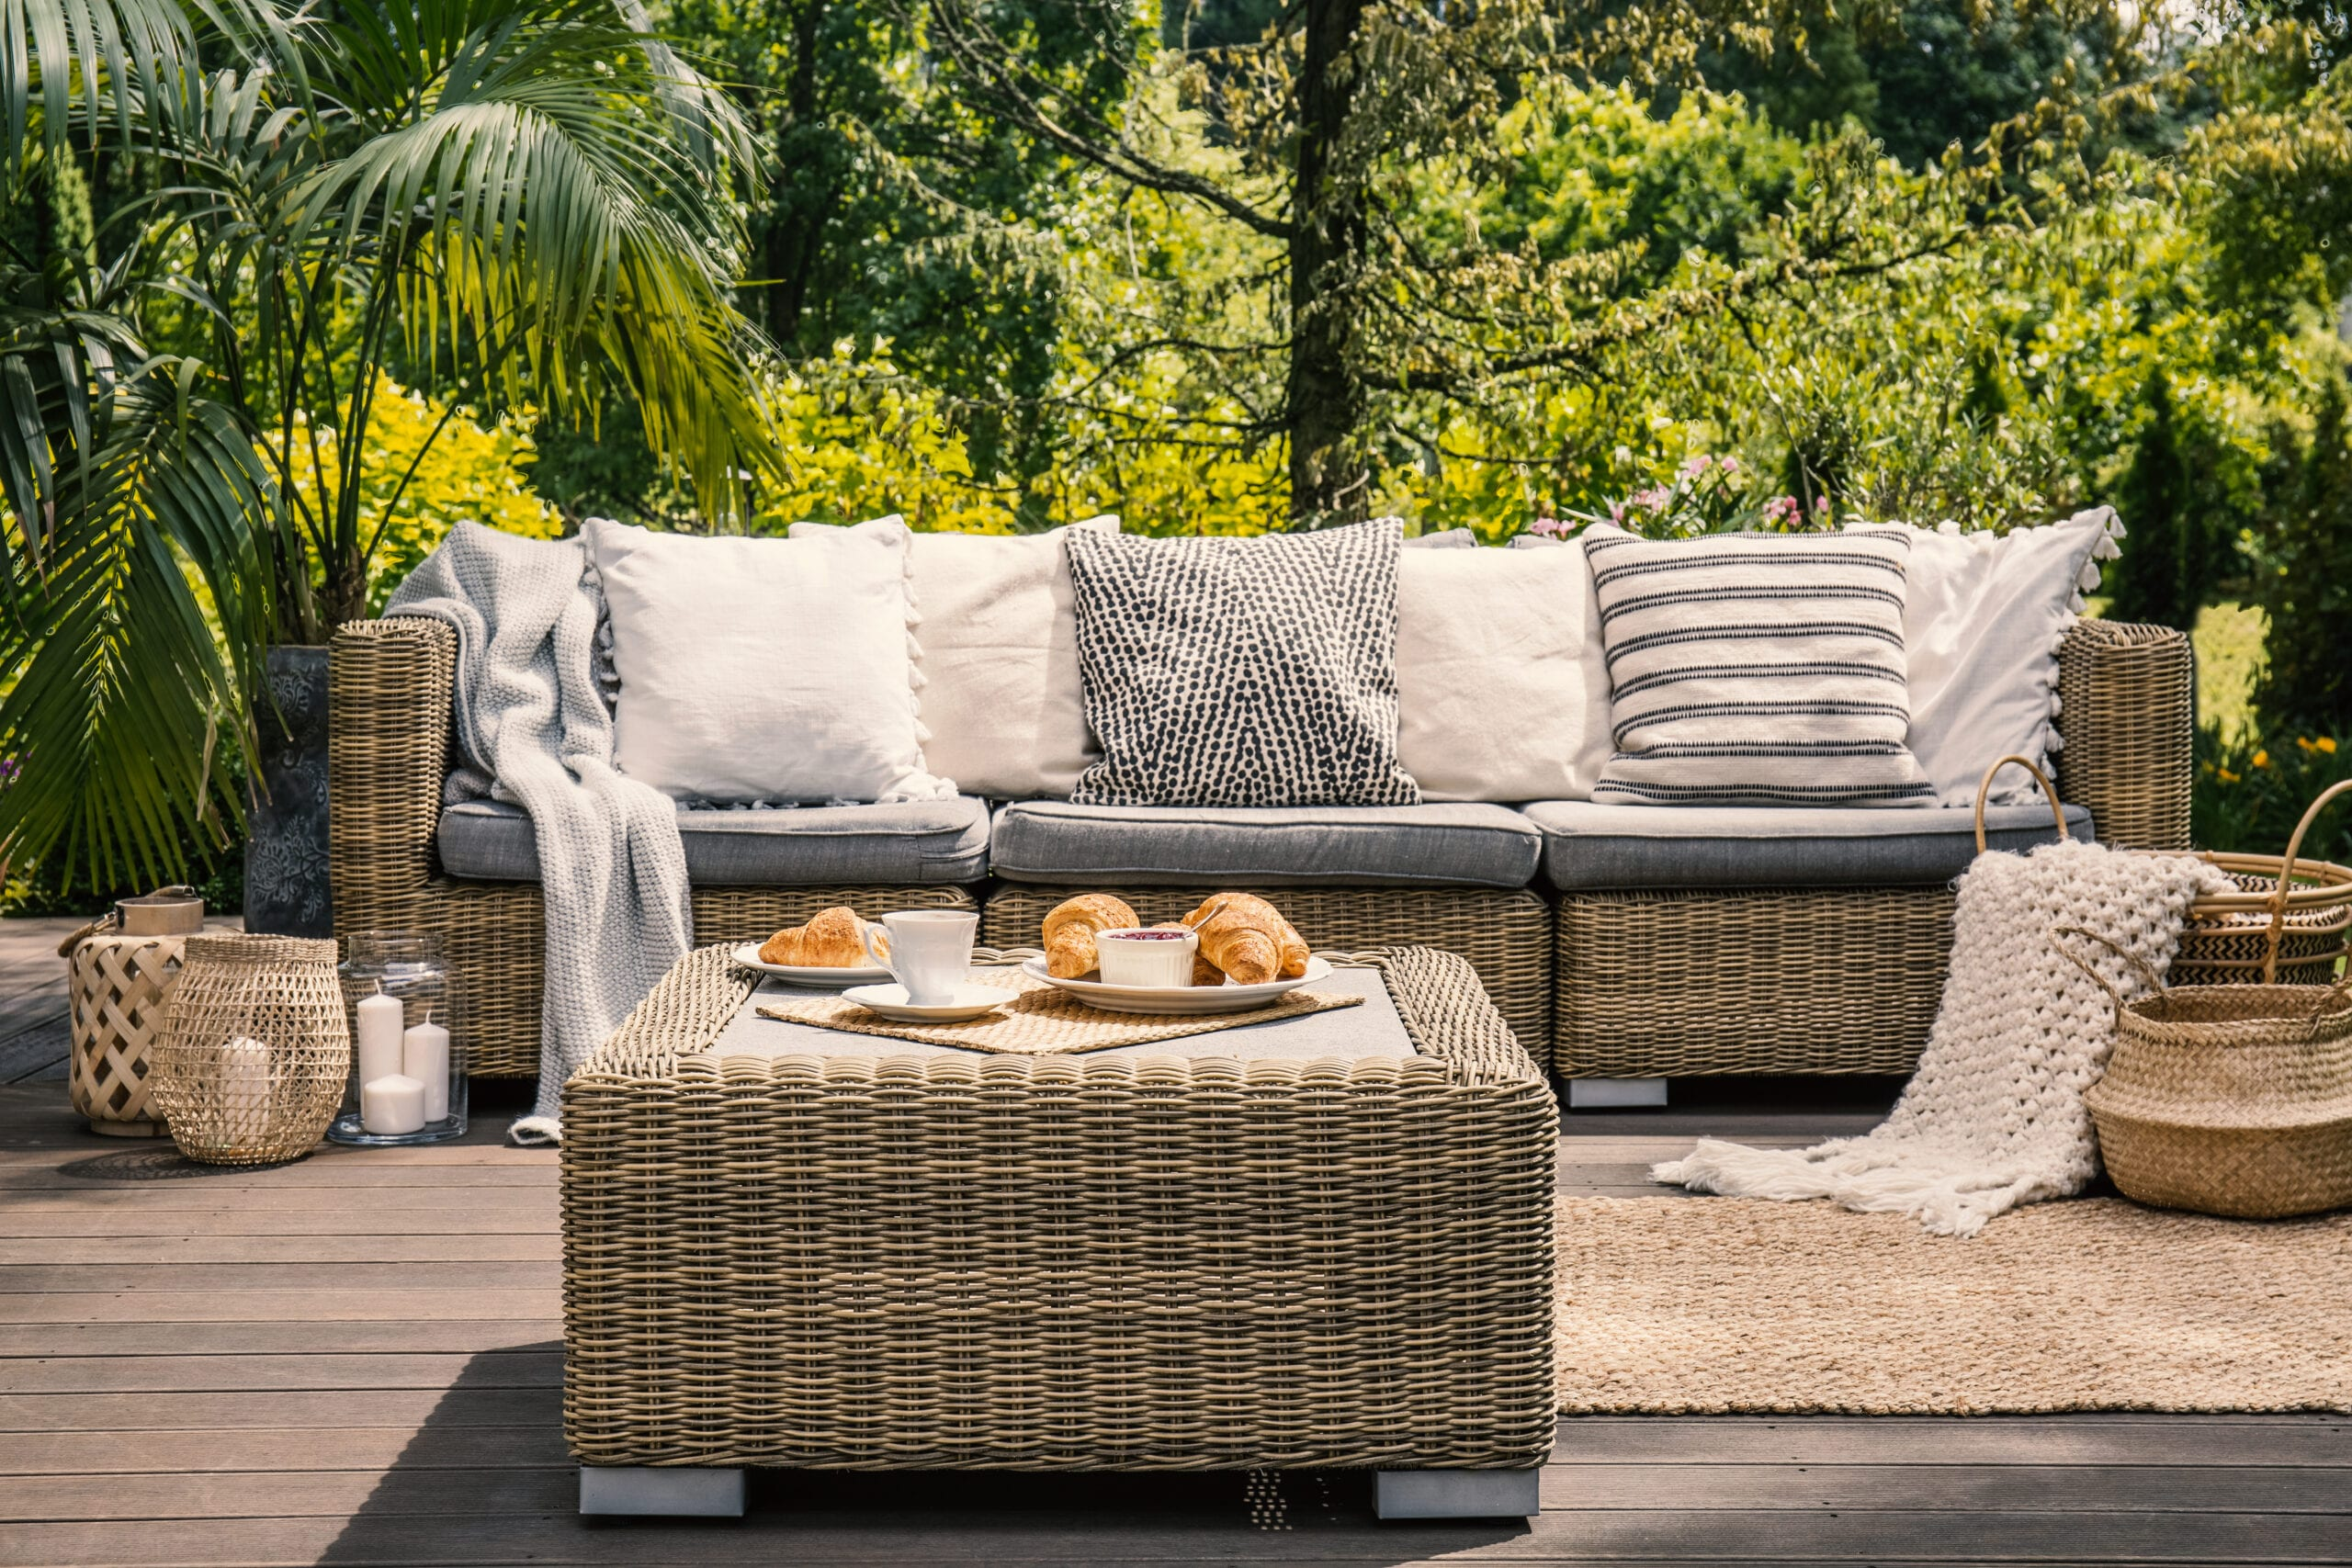 An Earthy Gray Palette Creates a Sophisticated Poolside Space